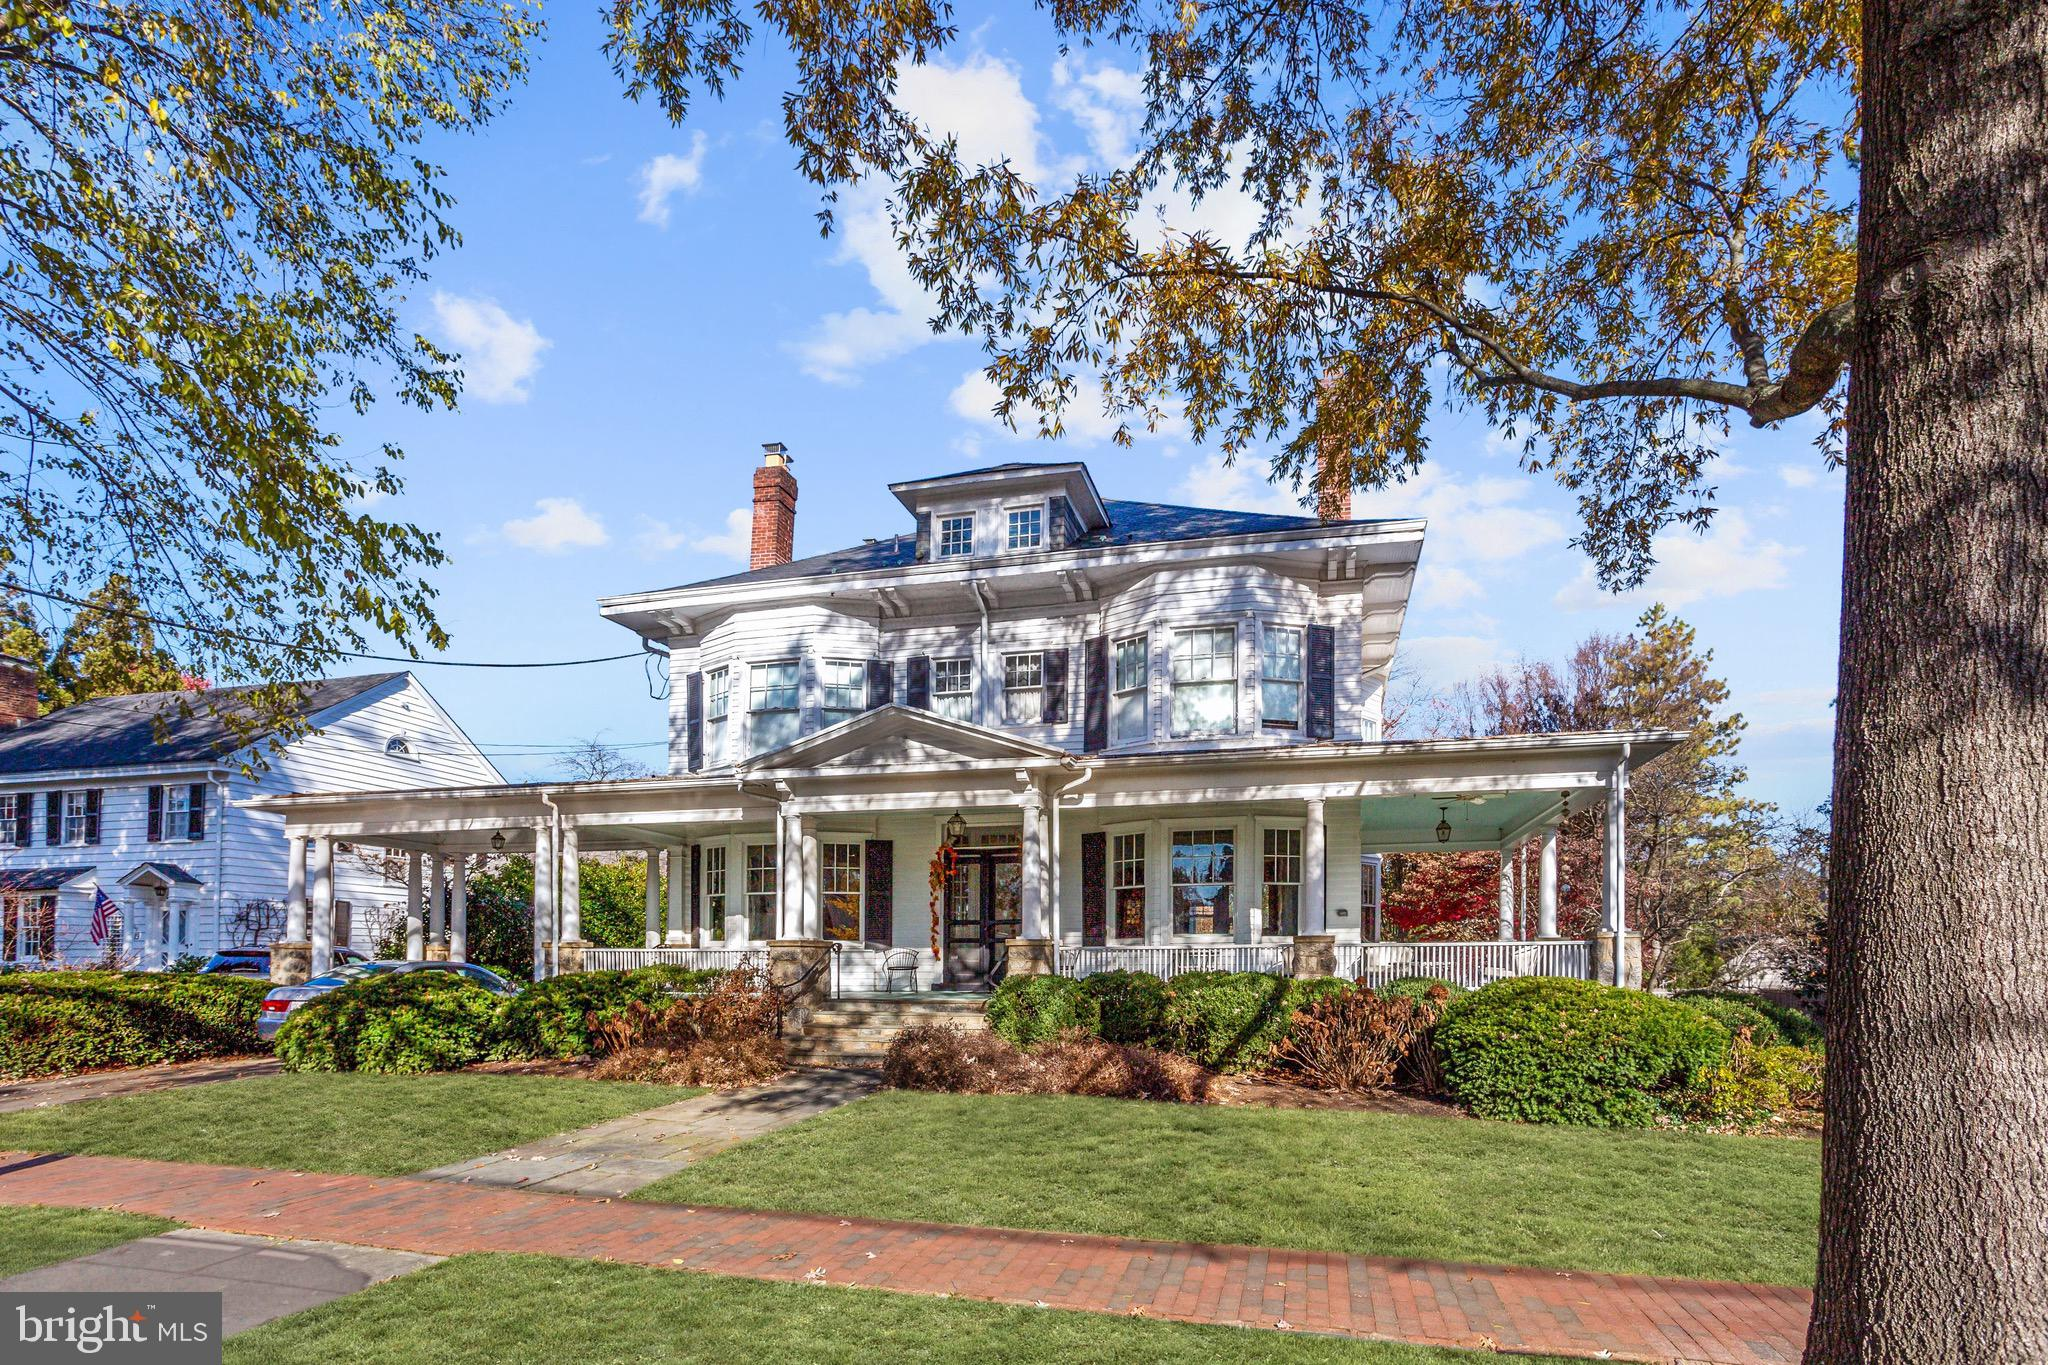 21 QUINCY STREET, CHEVY CHASE, MD 20815